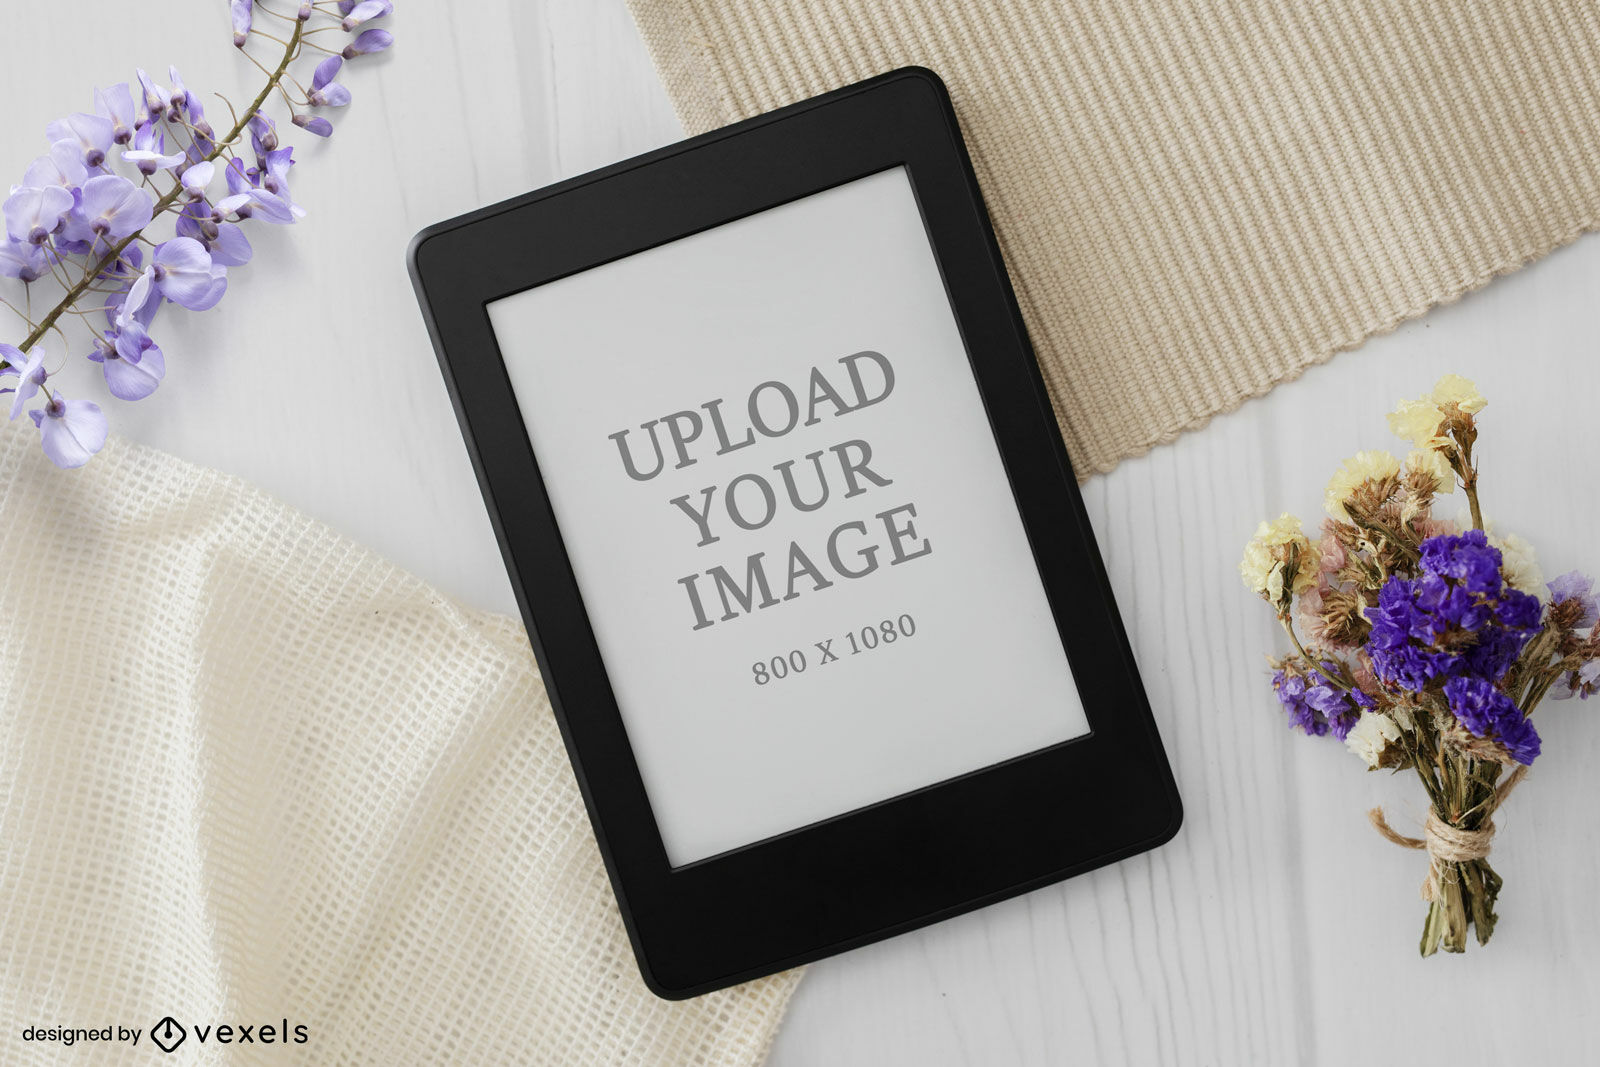 Kindle mockup table and flowers from top